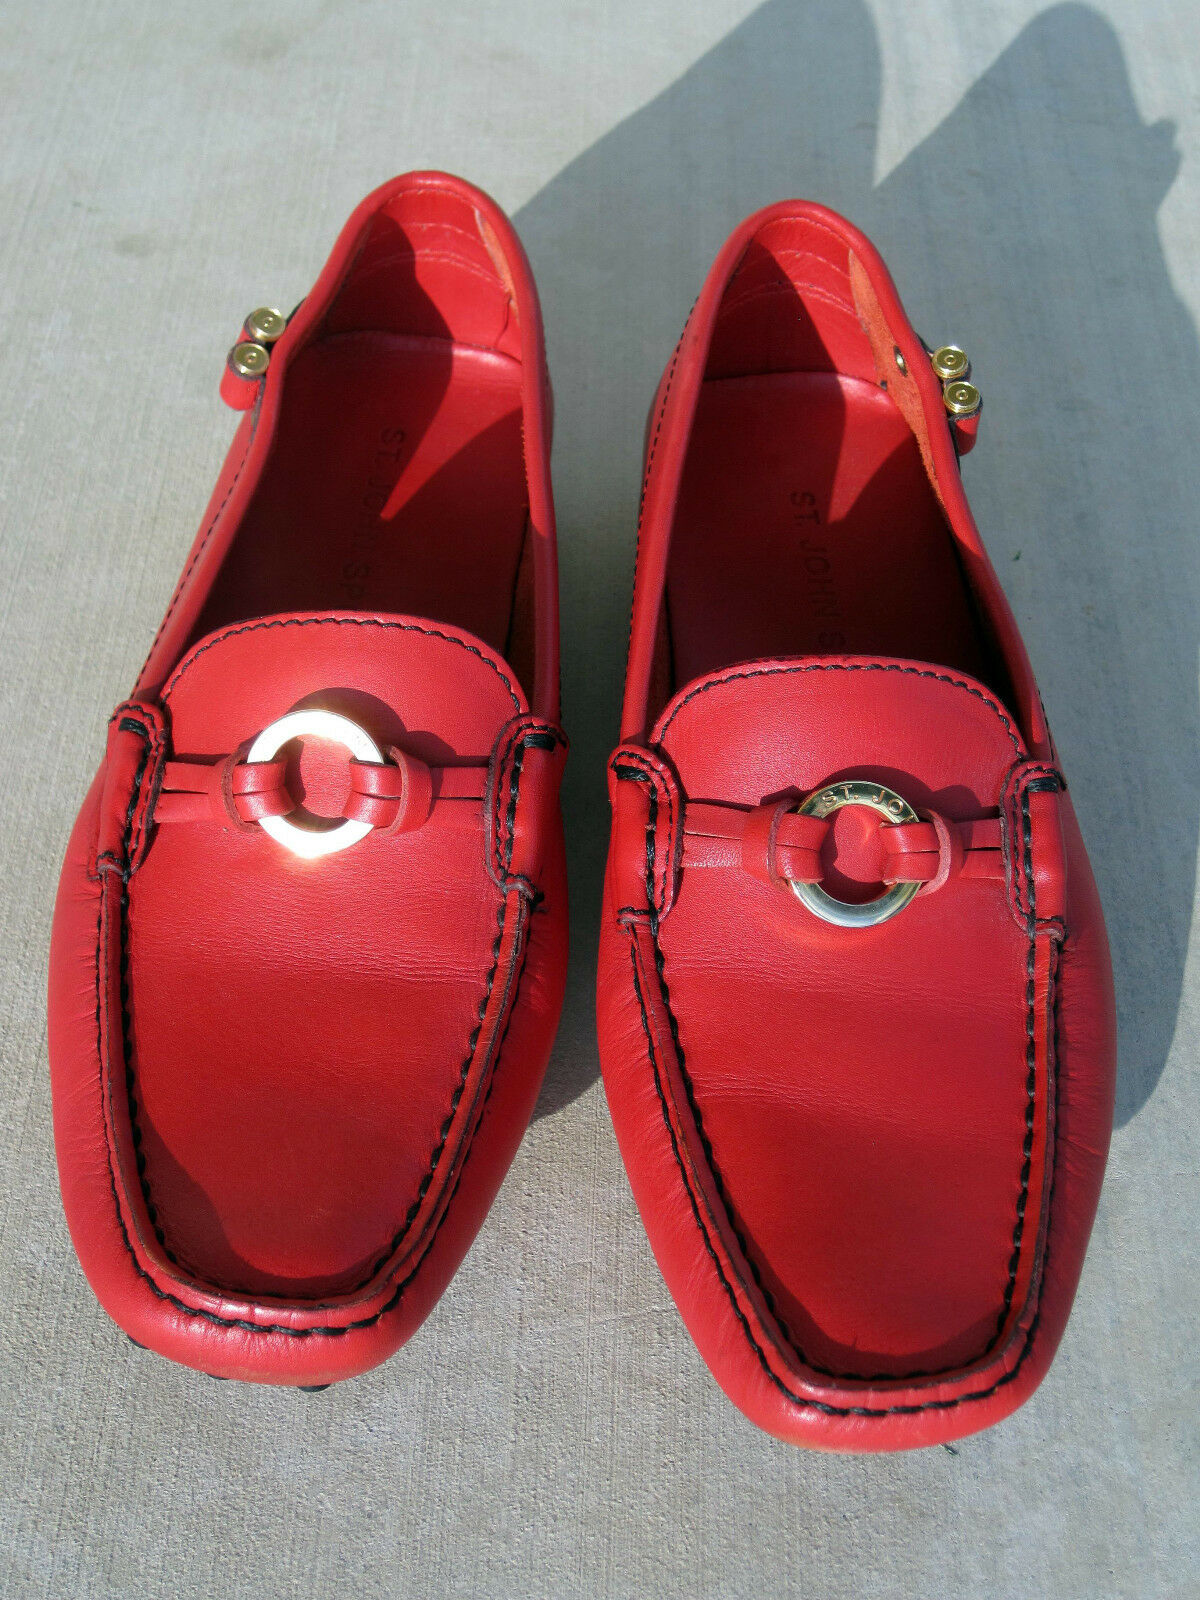 NEW ST. JOHN JOHN JOHN SPORT RED SHOES LEATHER DRIVING MOC CASUAL LOAFER 7M ITALY c2588f